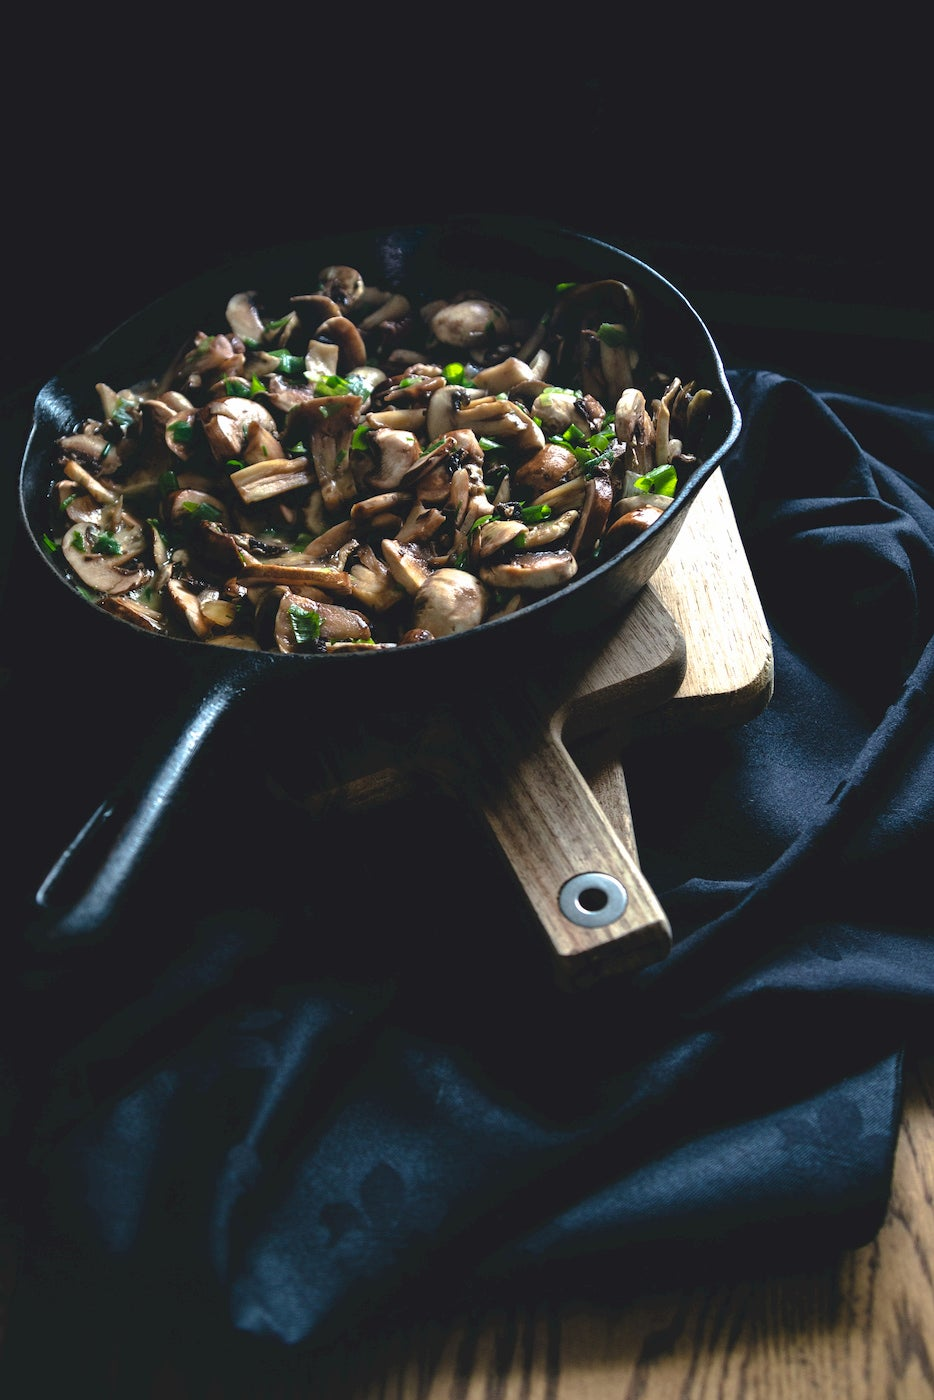 Sauteed mushrooms with herbs in a cast iron.